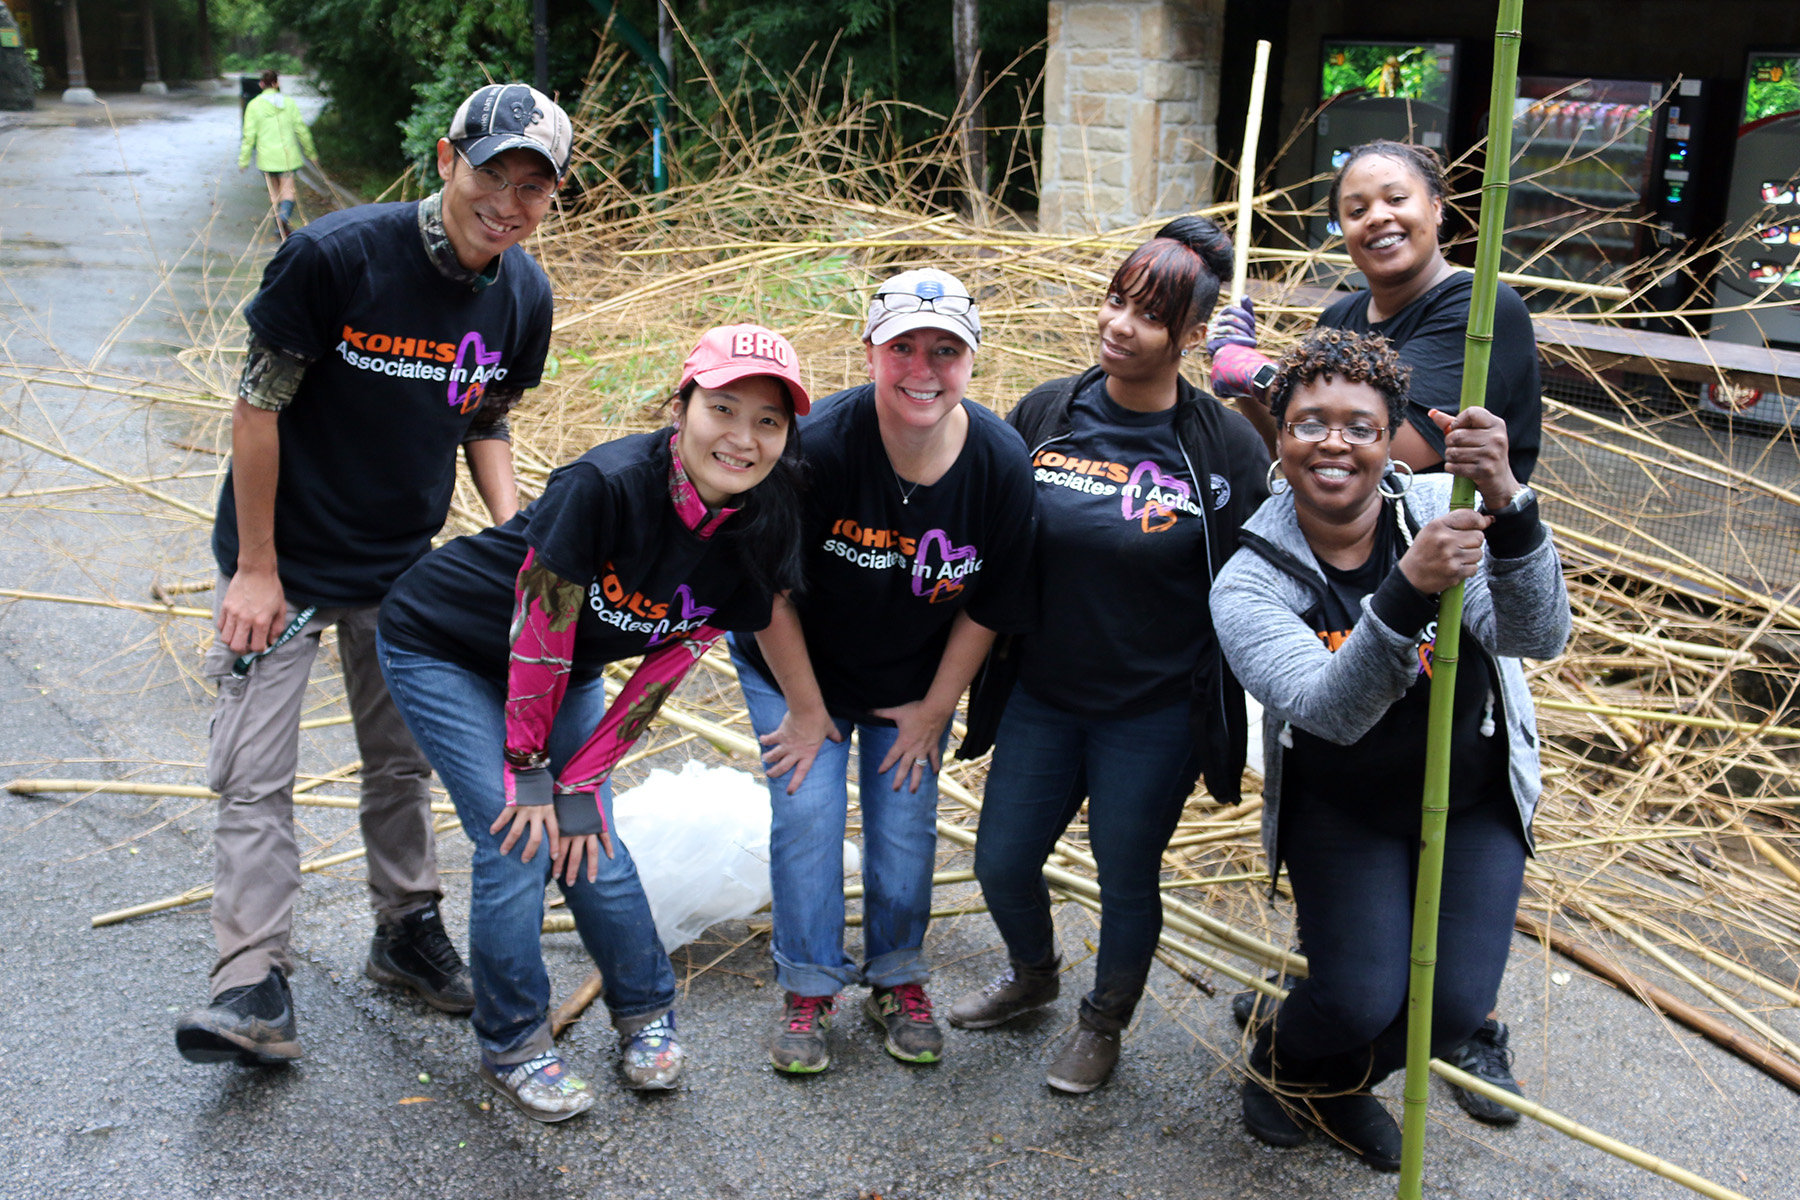 Kohl's, one of our most dedicated groups, works hard to clear bamboo out of our tiger habitat. We're honored Kohl's donated funds to our volunteer programs, and frequently spends time helping our Zoo.